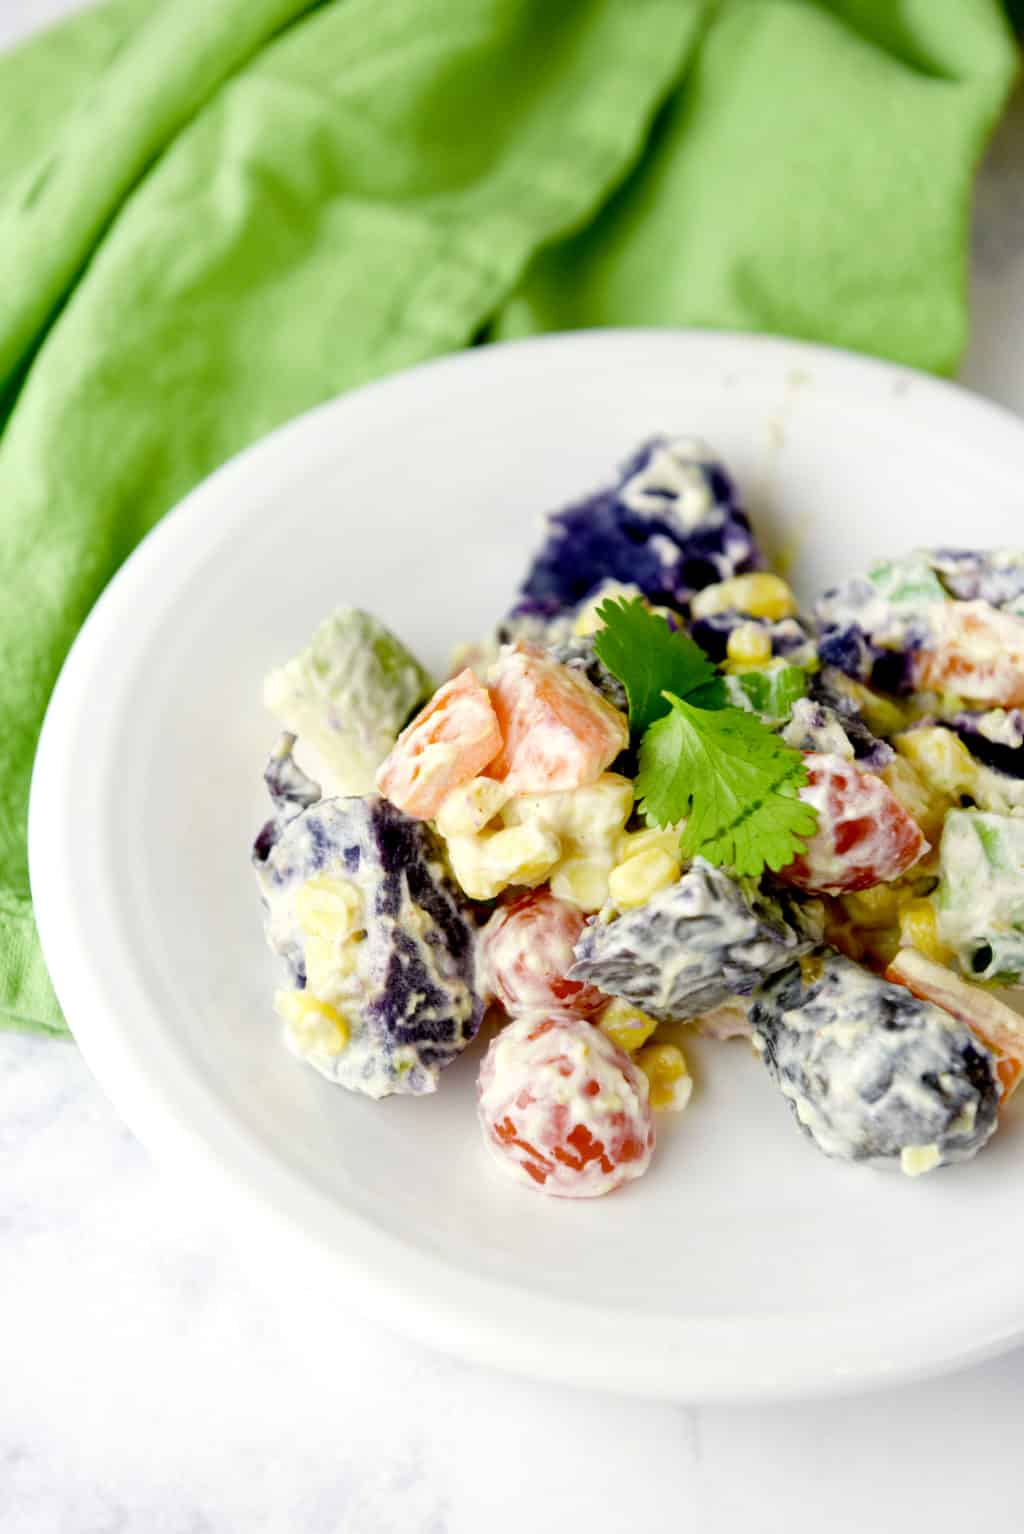 Rainbow Potato Salad!! This salad has a southwest flair and is perfect for St. Patrick's day or any rainbow party!